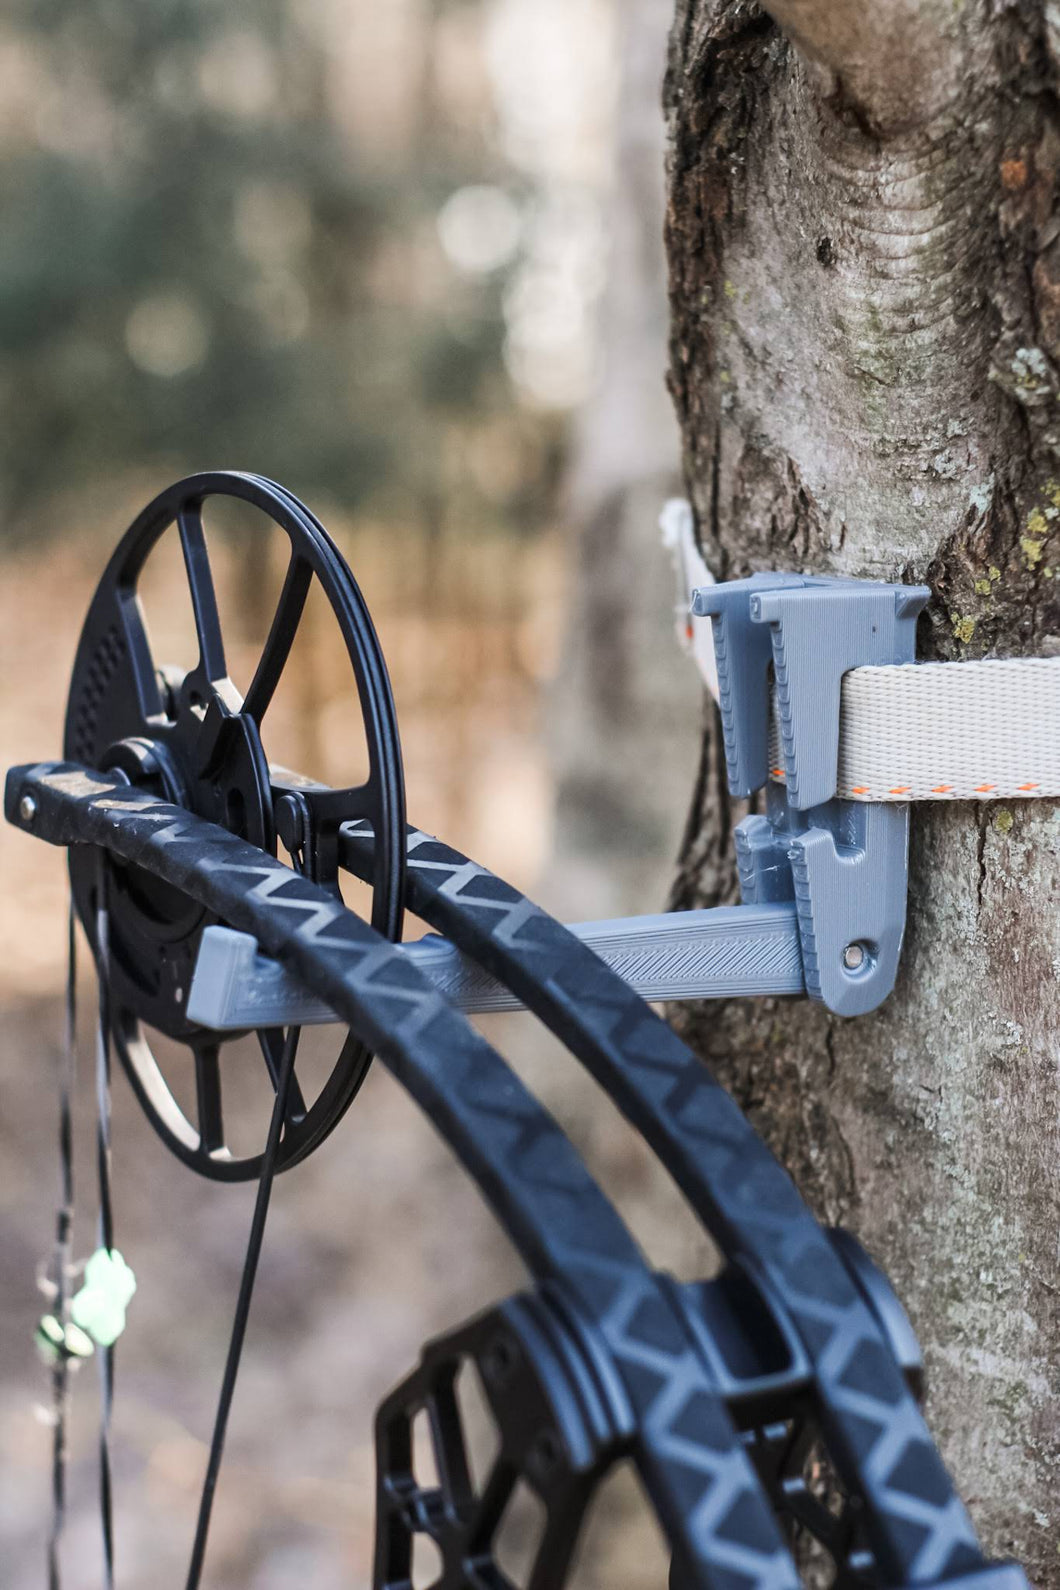 Bow Hunting Hanger